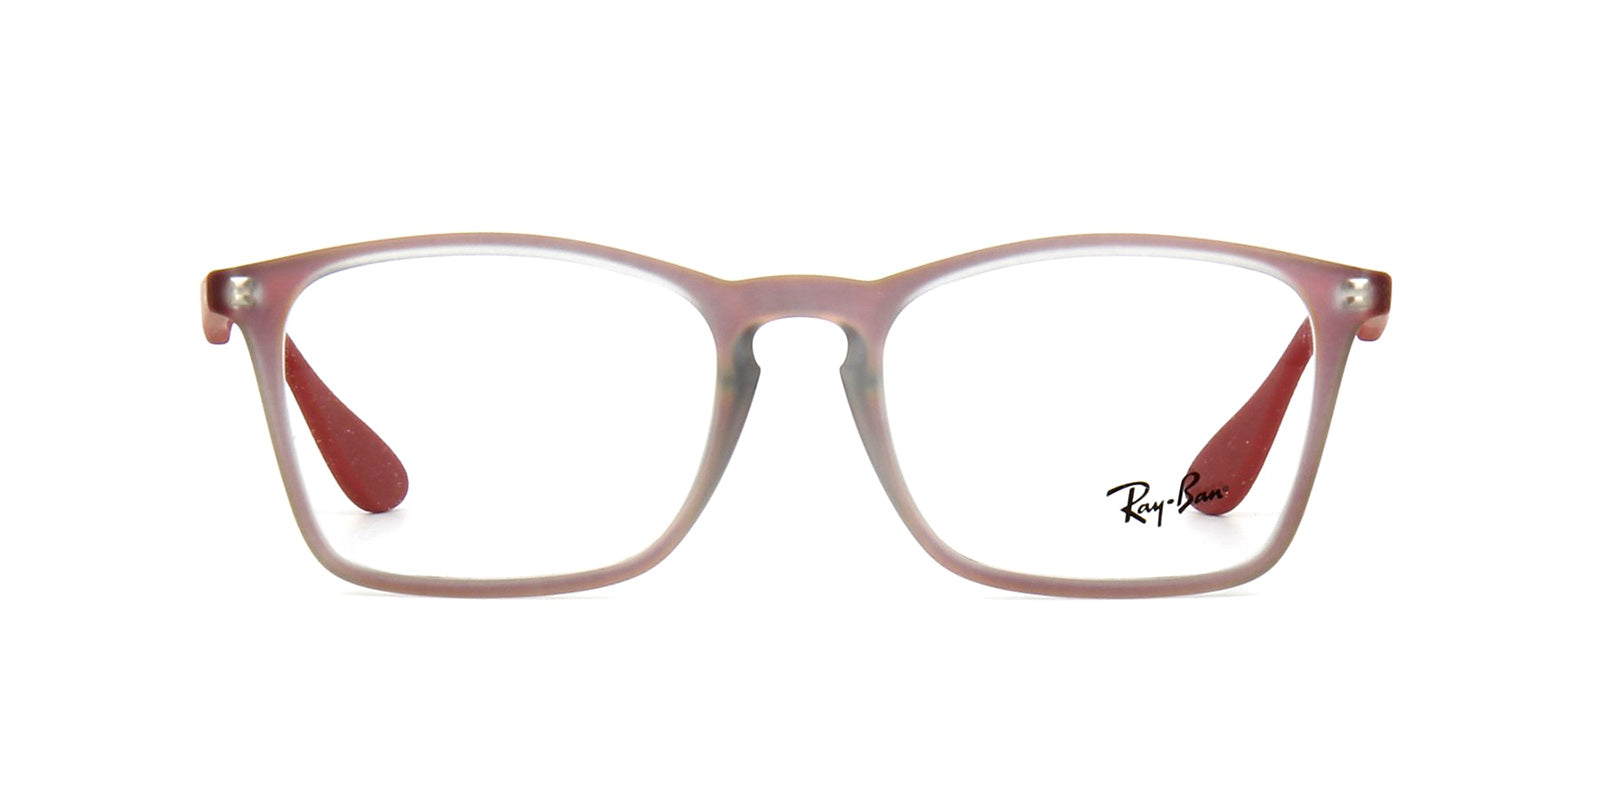 Ray Ban Eyeglasses RB7045 5485 RX-ABLE